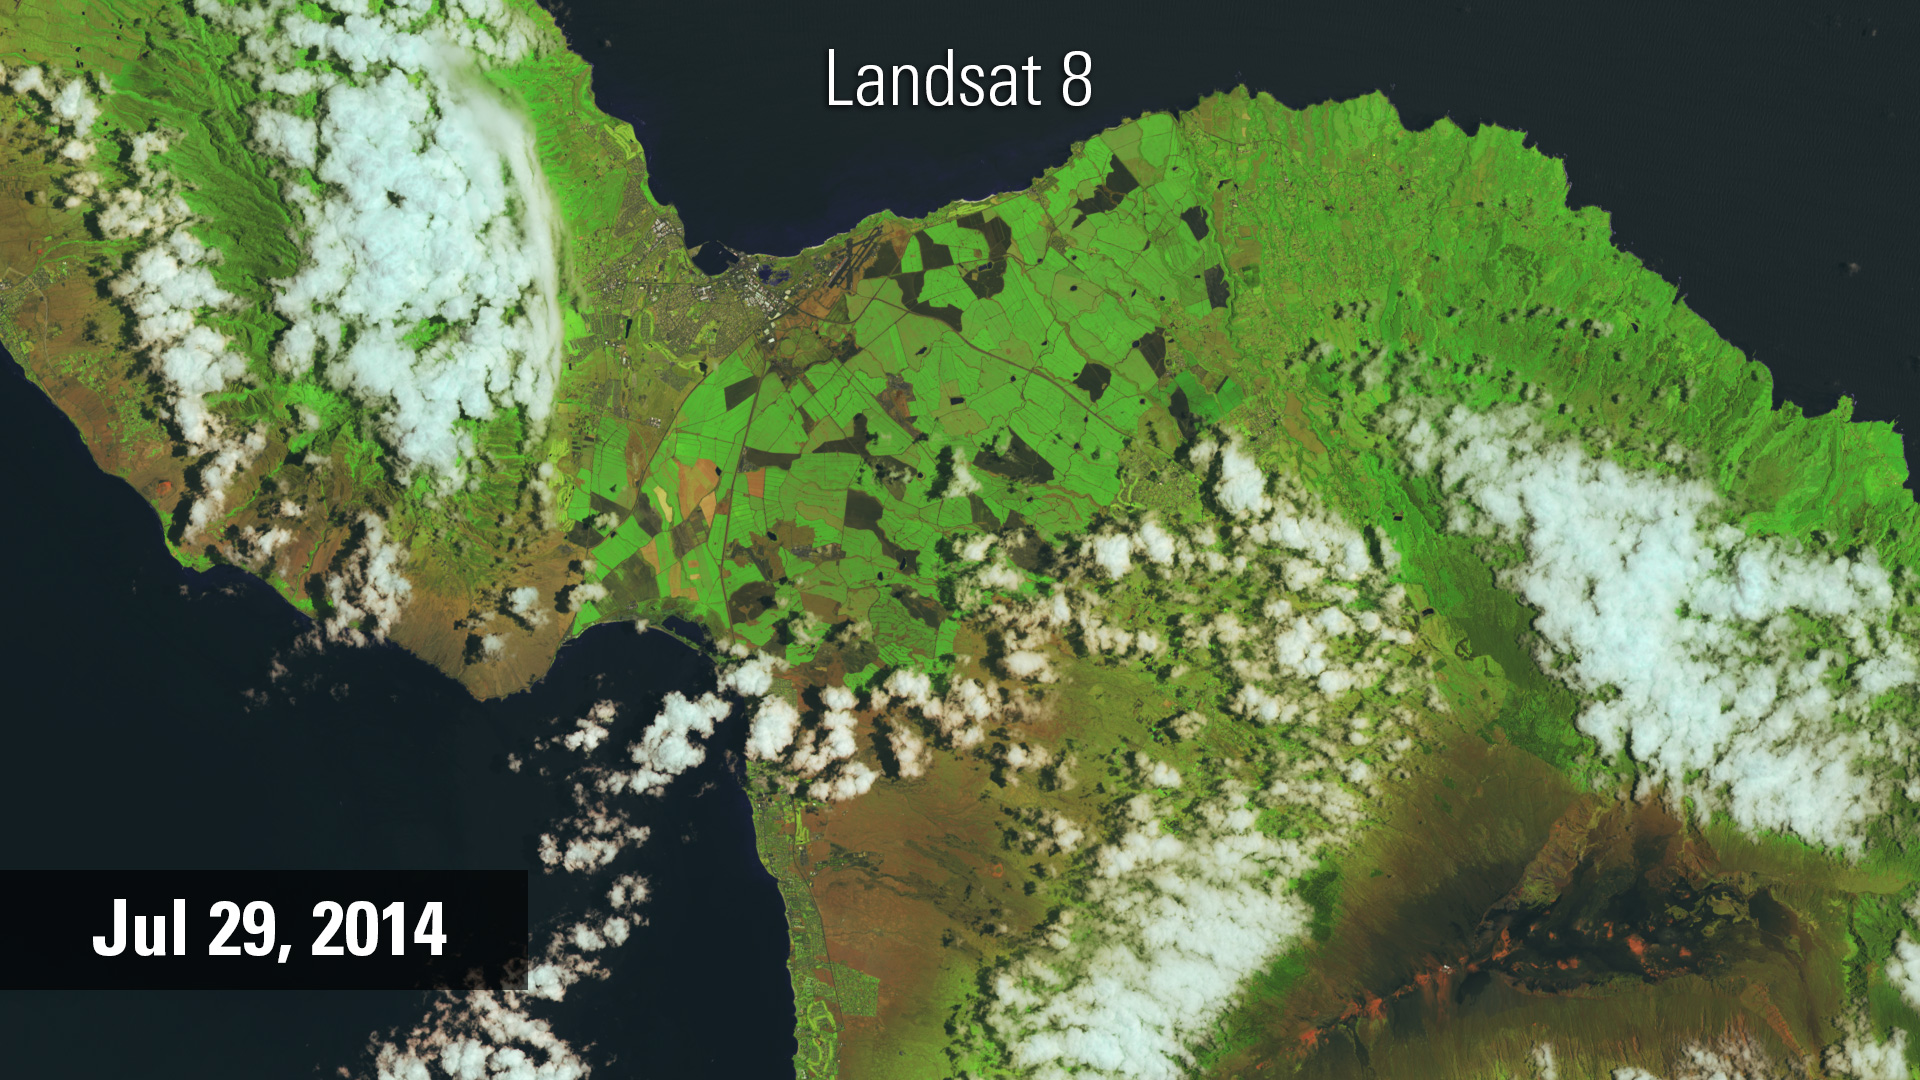 Landsat 8 image of Maui, July 2014